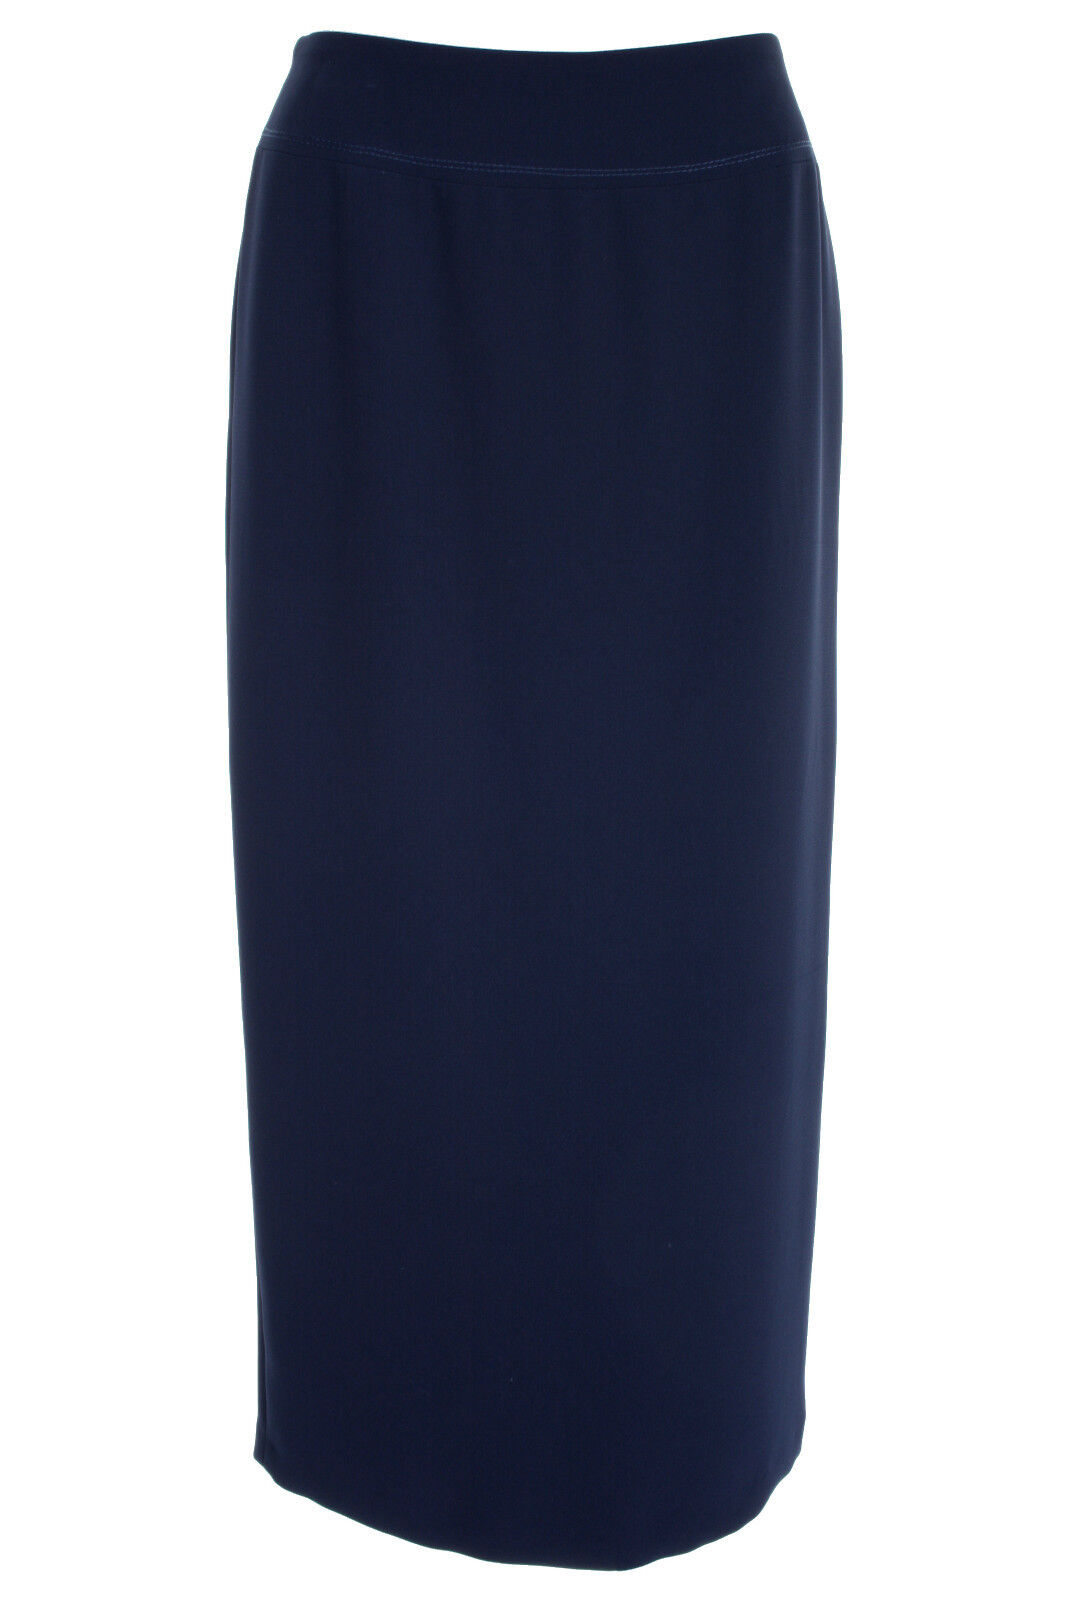 Busy Womens Navy Long Skirt, Sizes 10 To 26